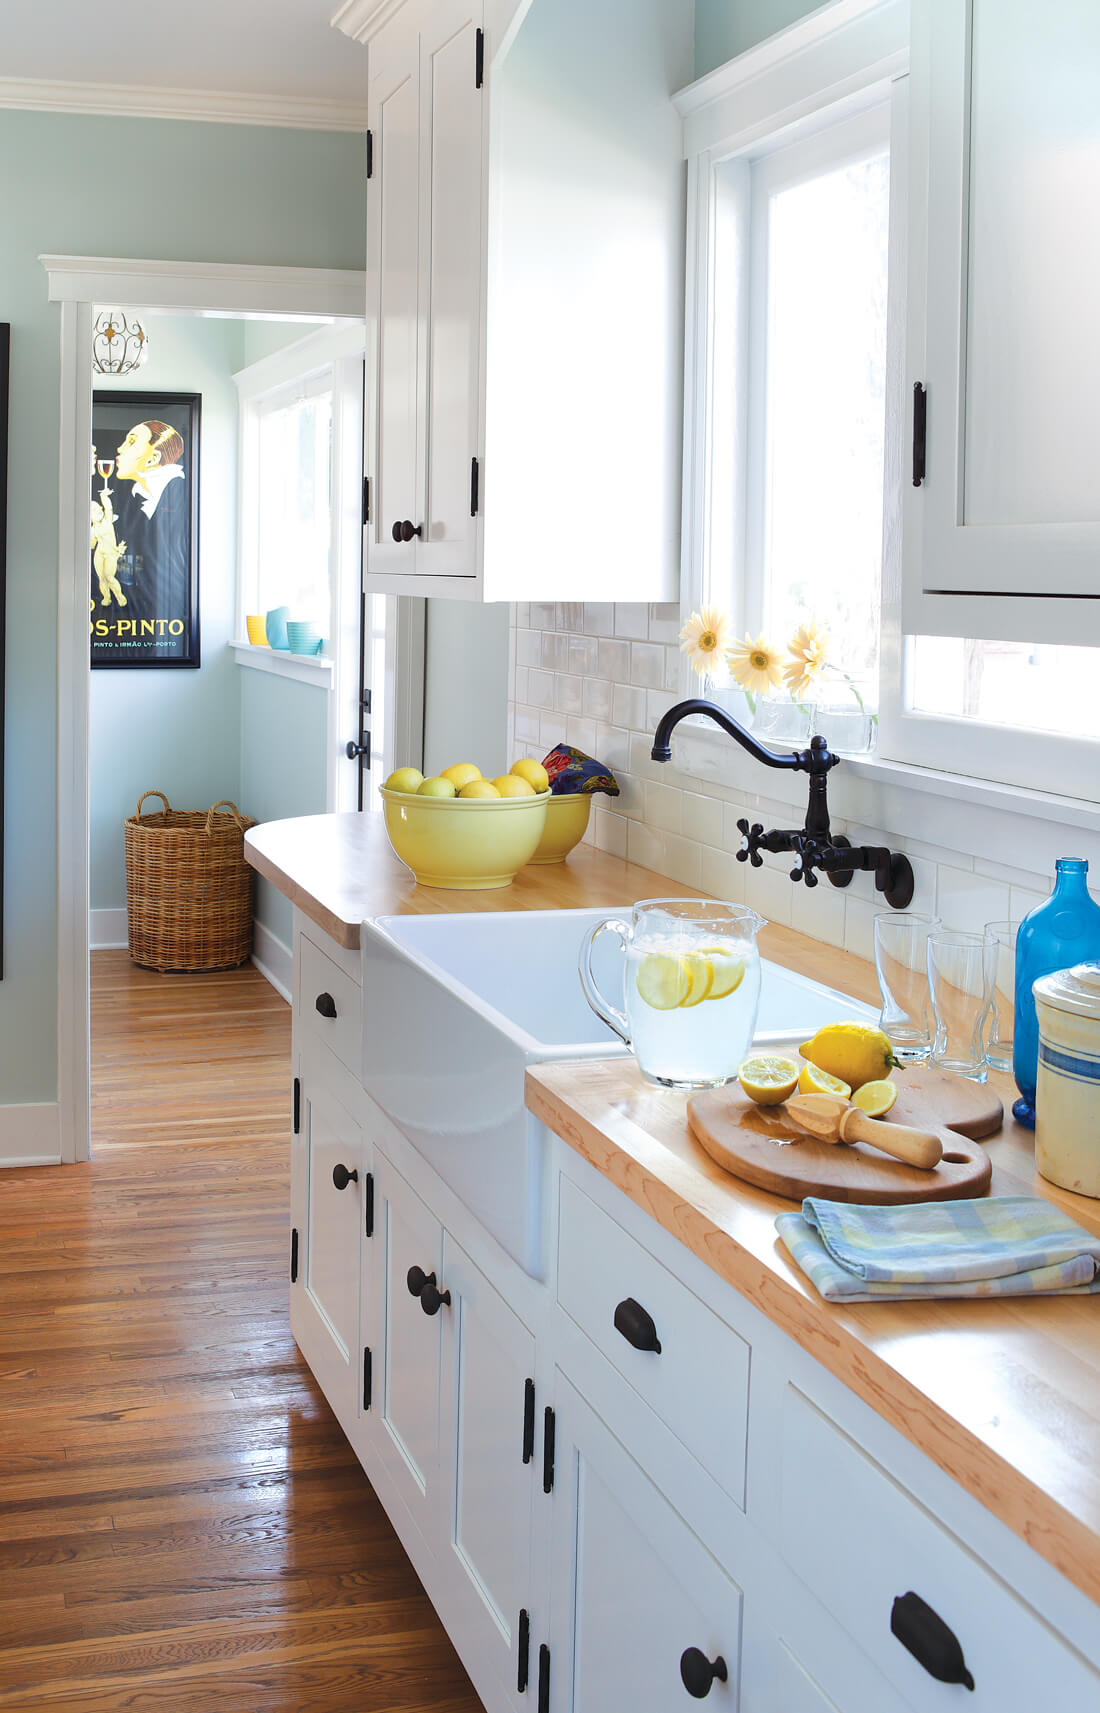 Kitchen with white inlay cabinets and butcher block, wooden countertops.